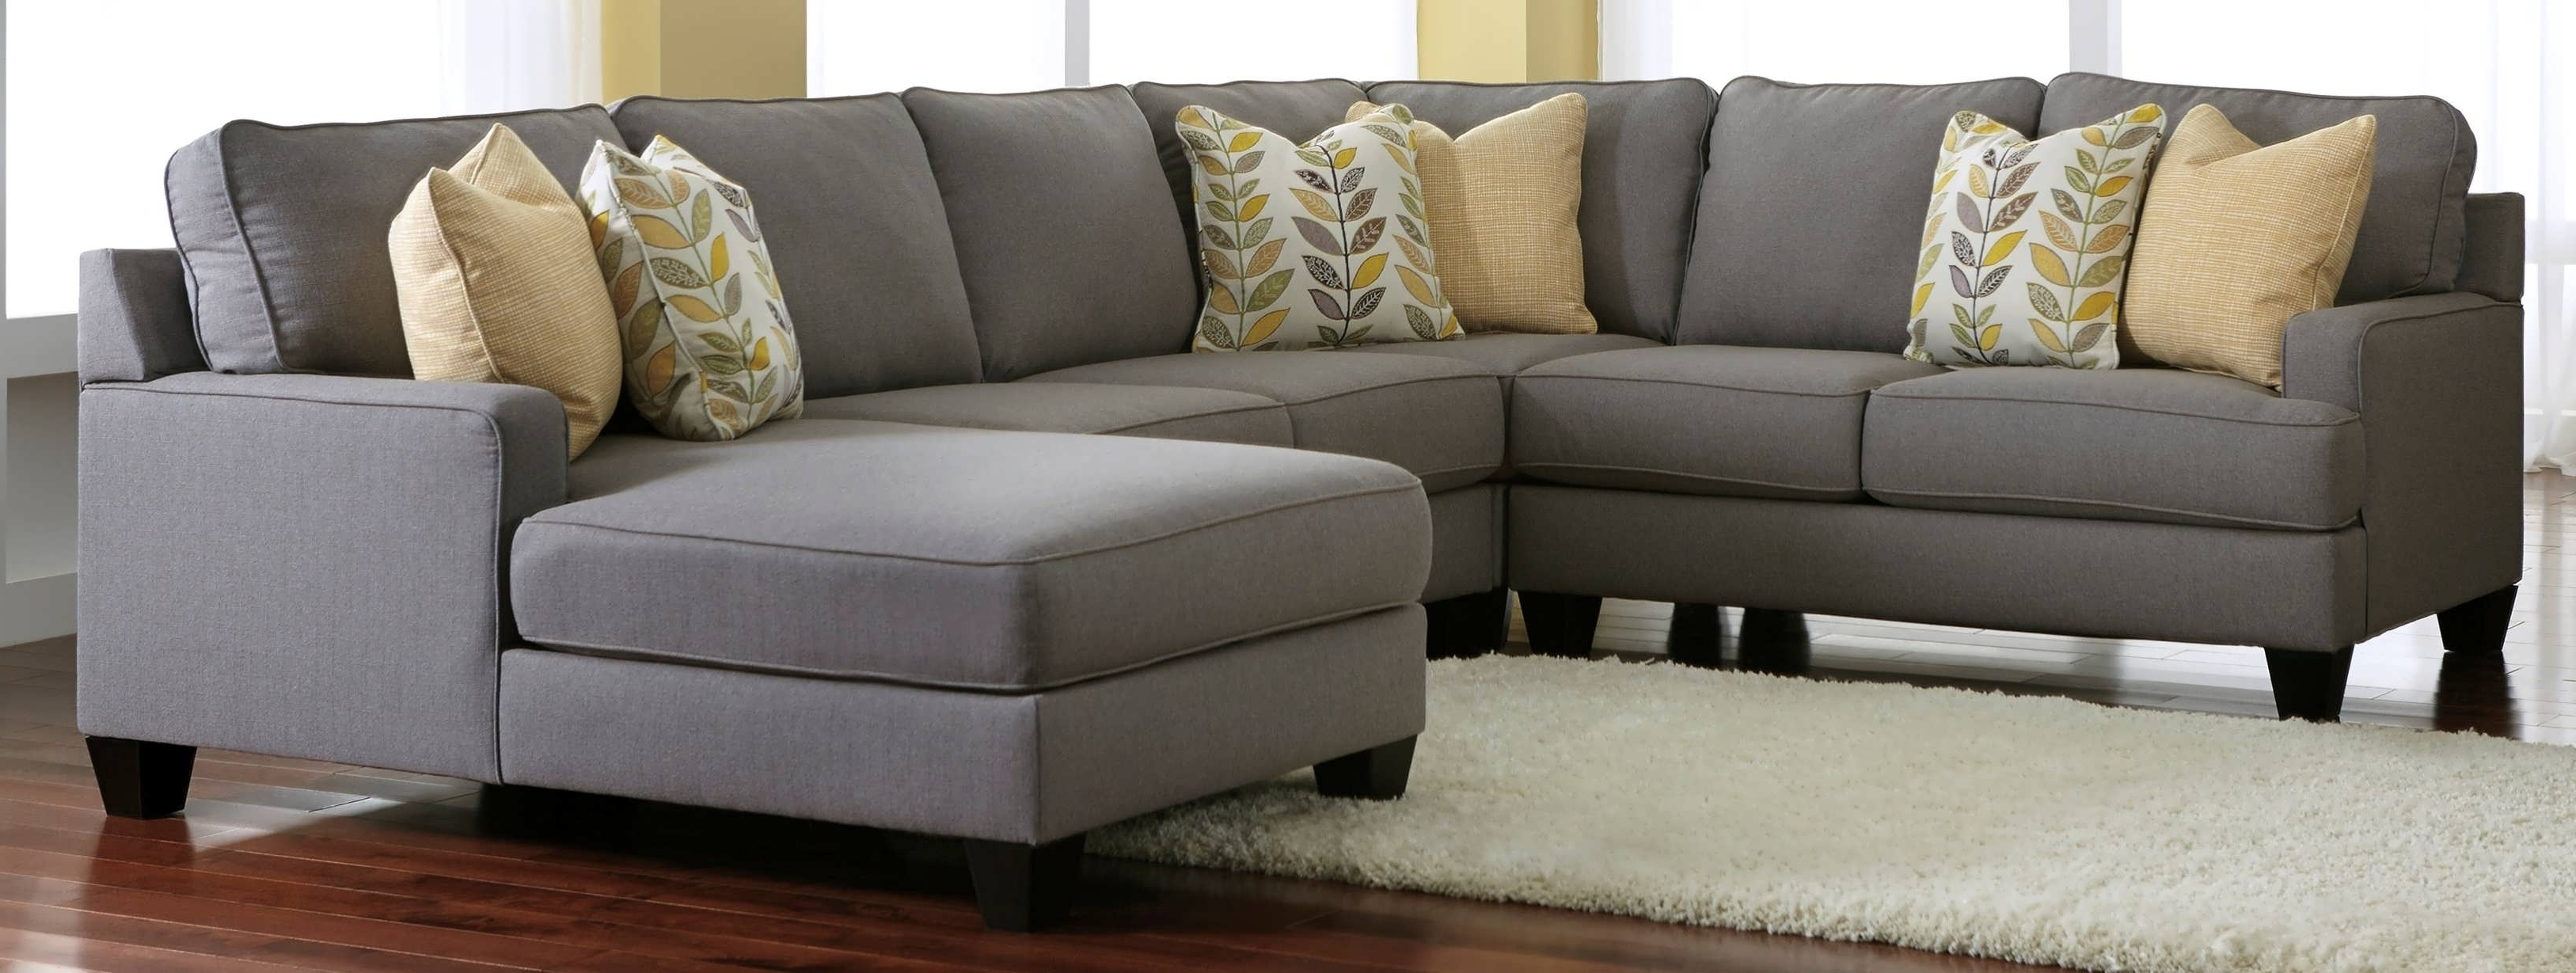 Sofa : Cheap Sectionals Gray Chaise Sofa Gray Sectional With Throughout Well Known Chaise Sectionals (View 13 of 15)